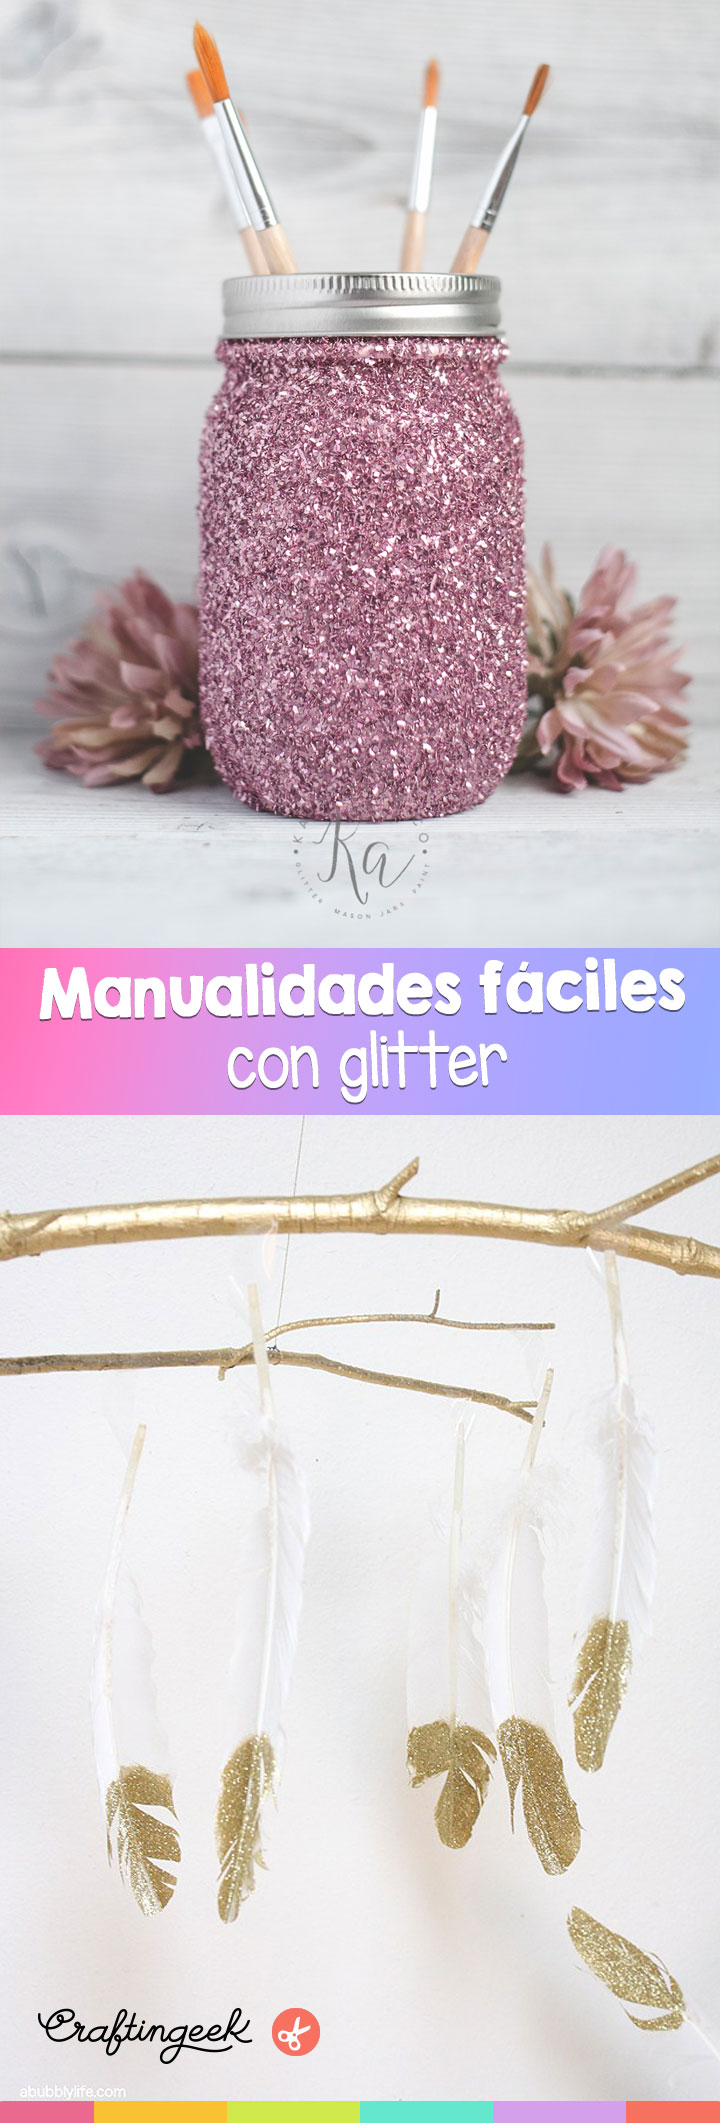 Manualidades Faciles Que Puedes Decorar Con Glitter Craftingeek - Decoracin-manualidades